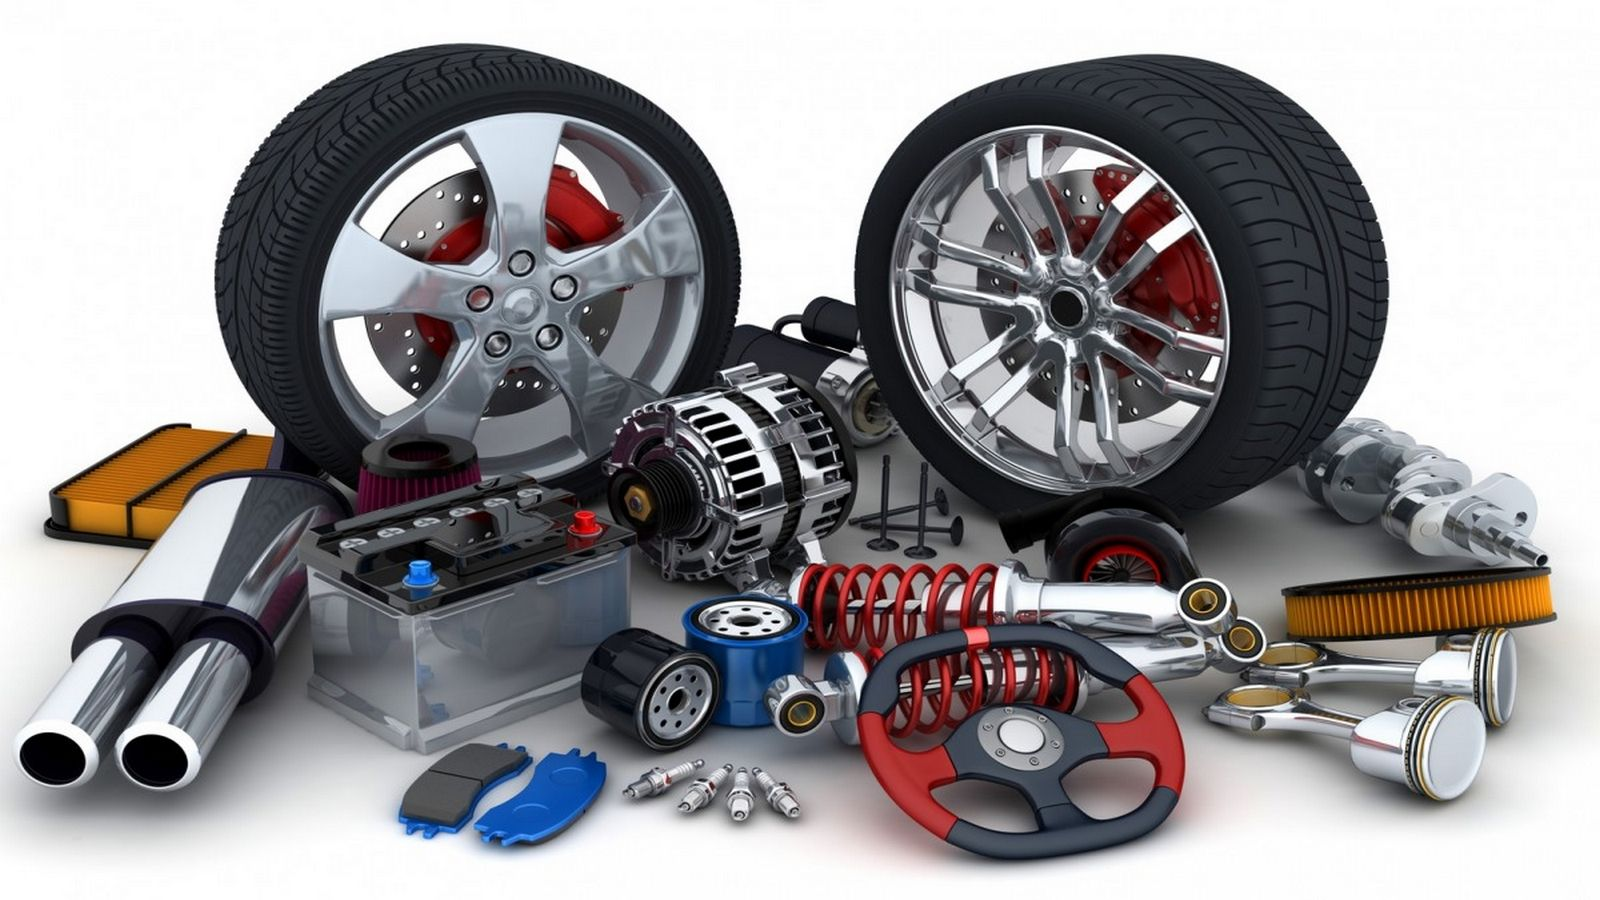 Does Your Dealership Sell Auto Parts Online? - Discuss with SparesHub